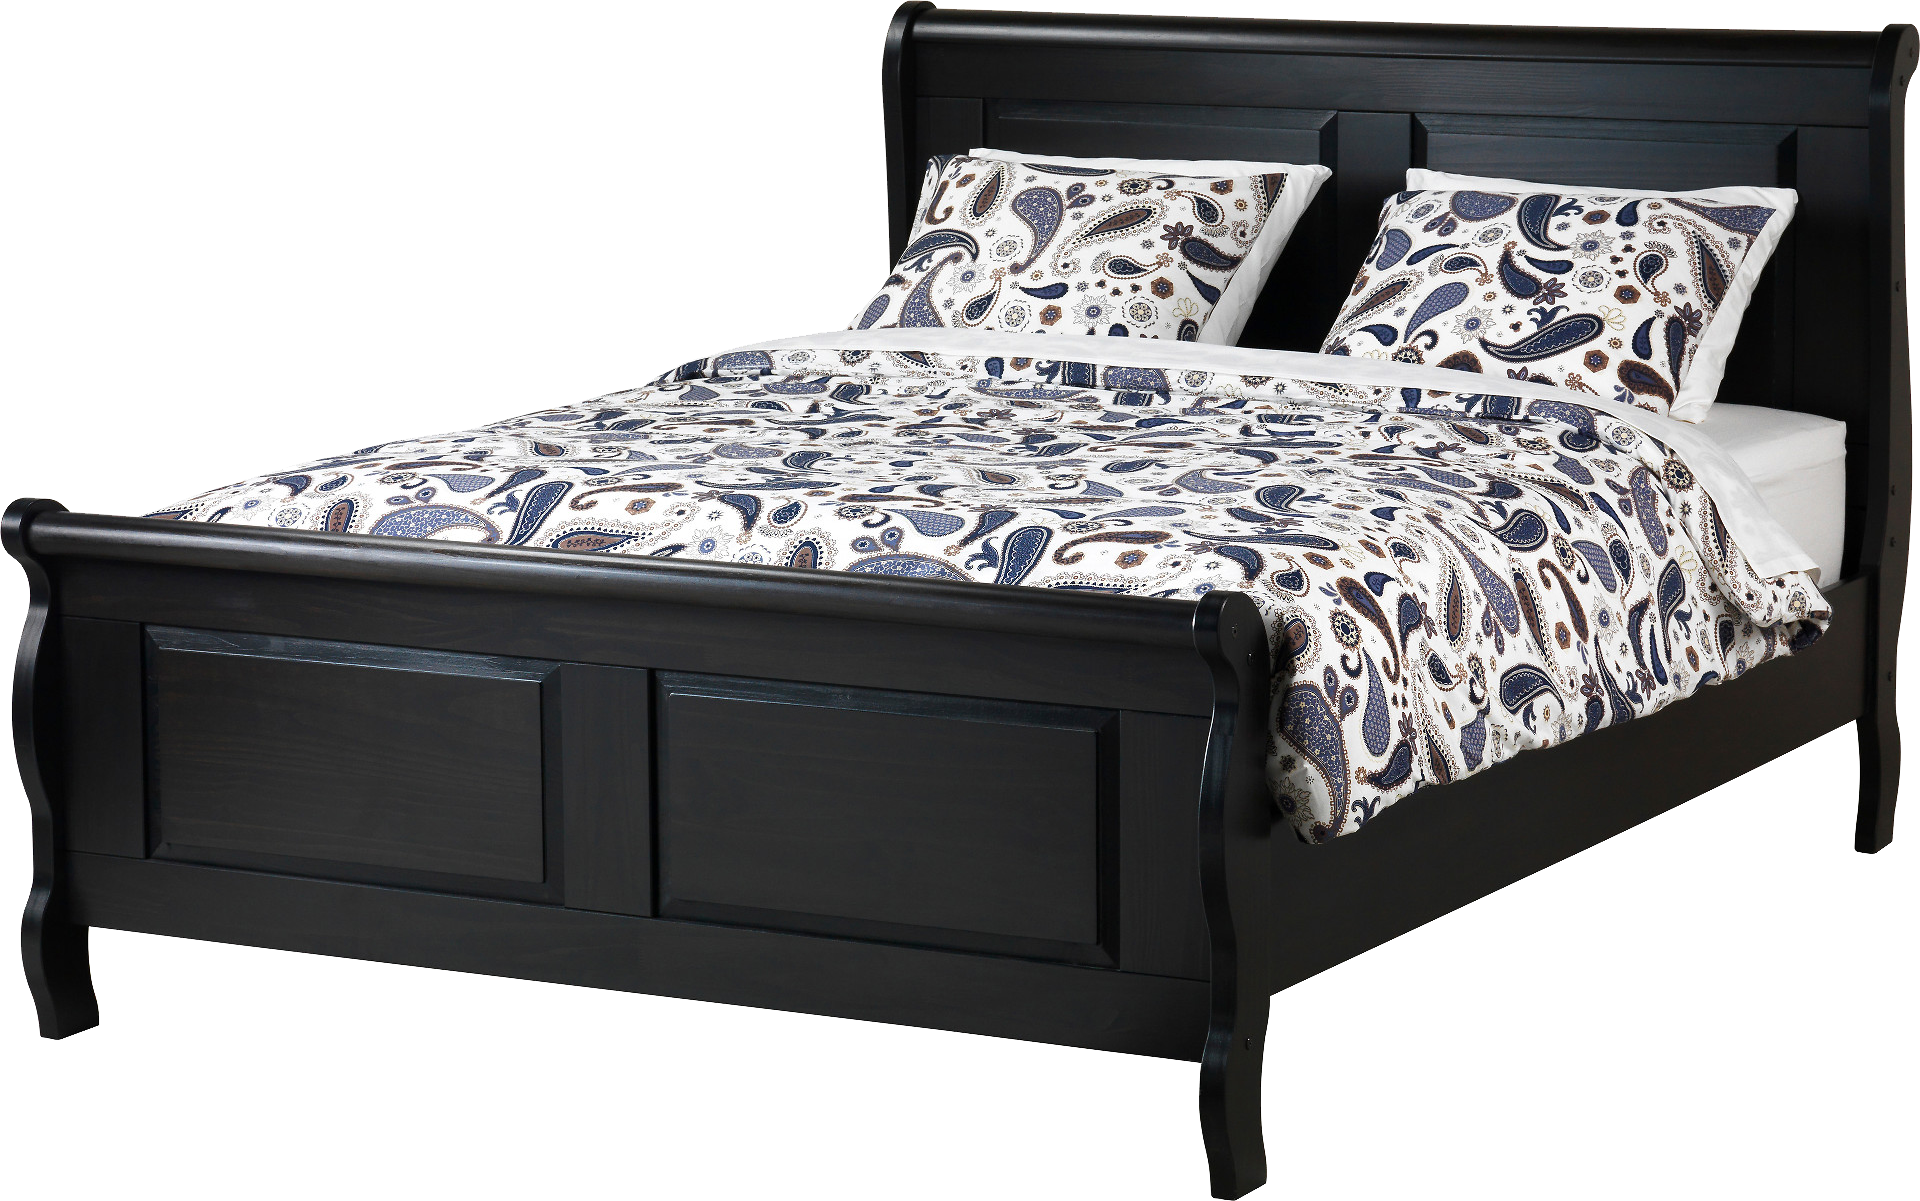 Furniture PNG images free download.